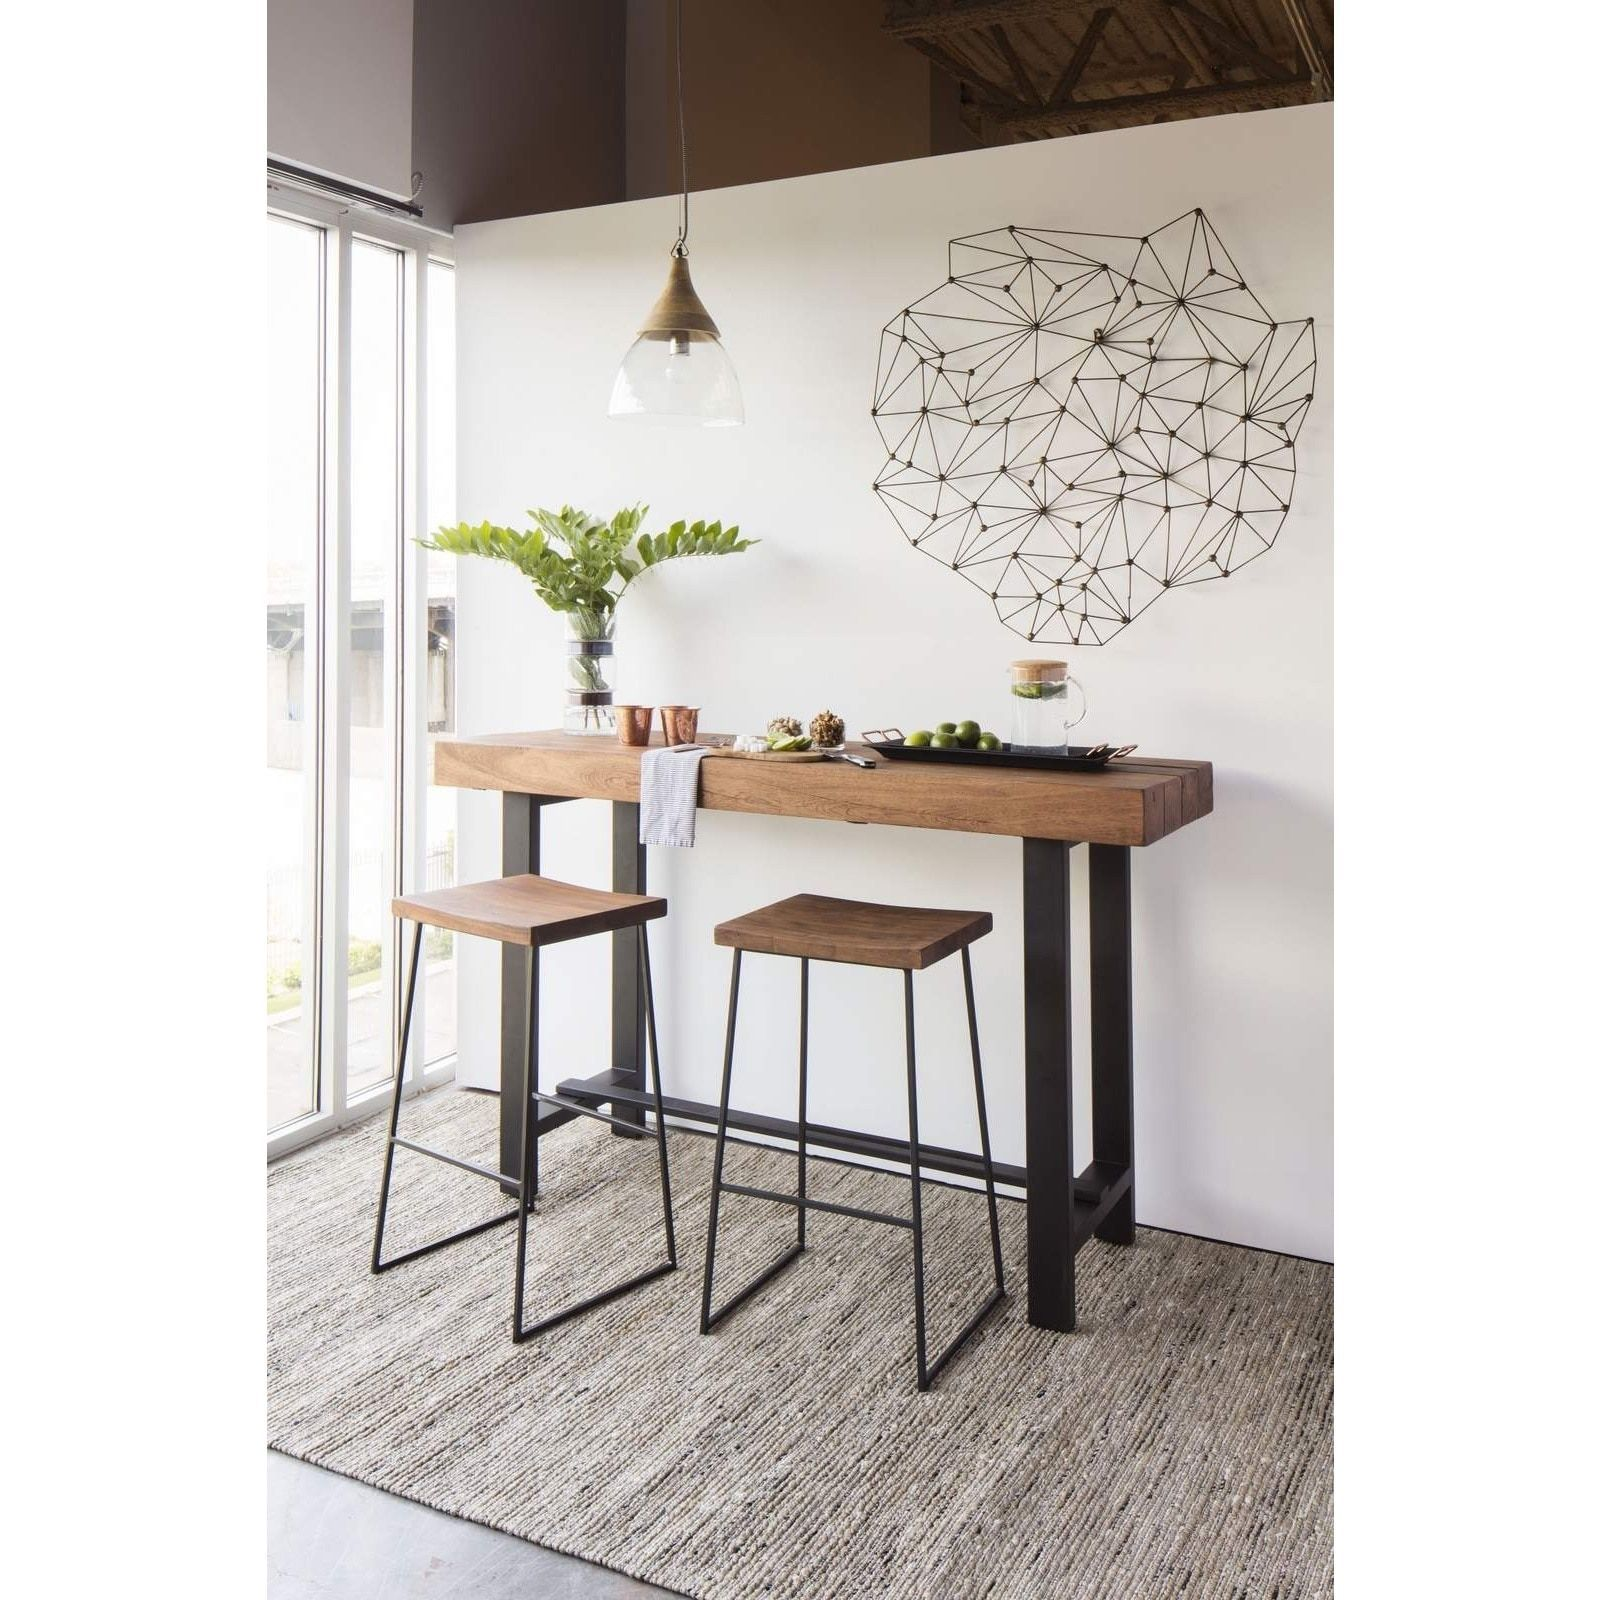 Aurelle Home Commercial Grade Rustic Bar Stools | High Dining Tables ...